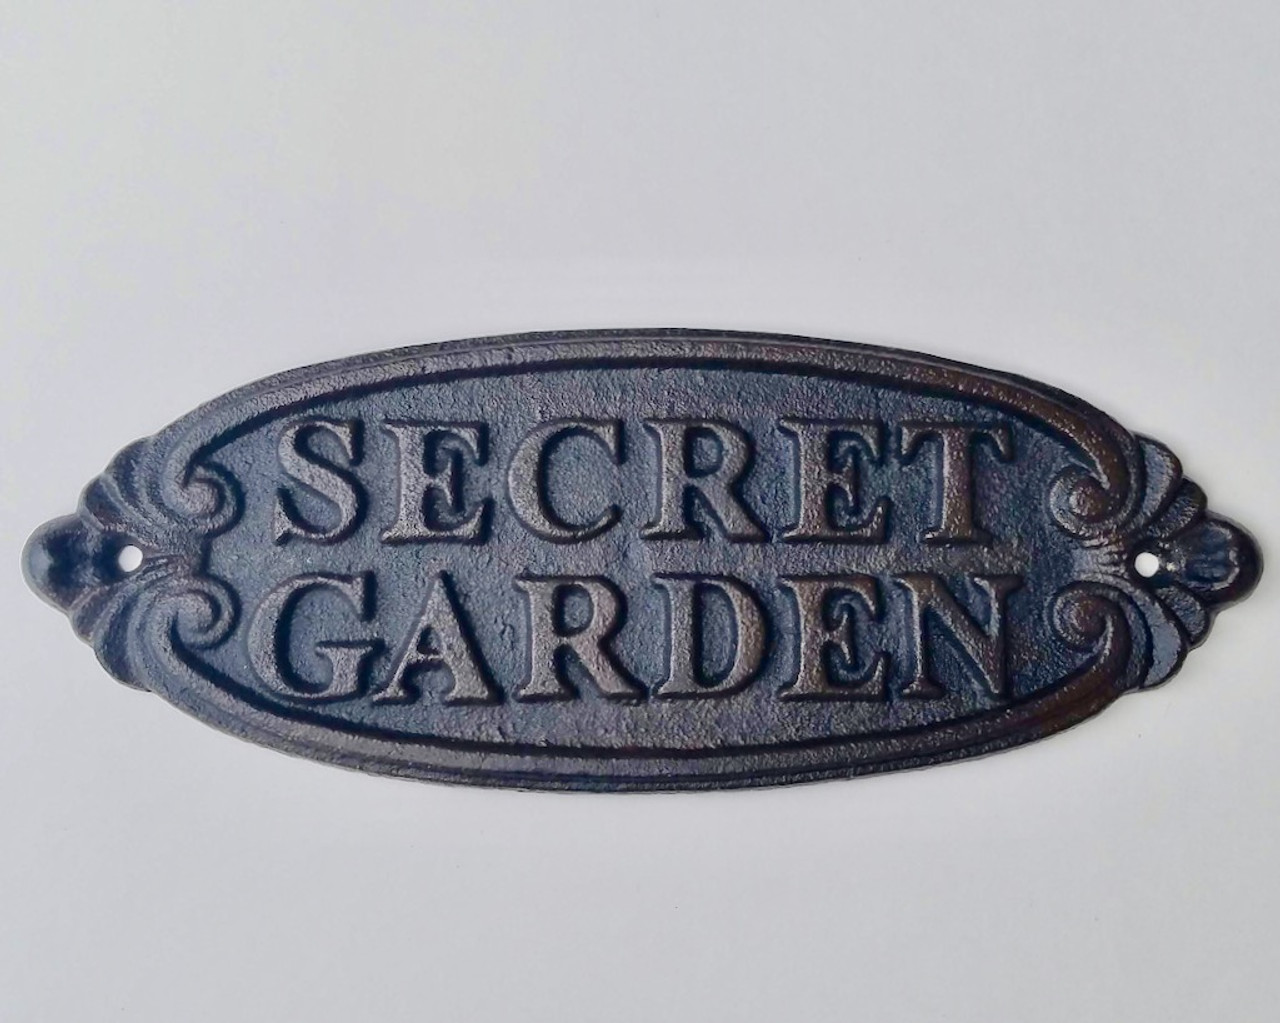 Secret Garden Cast Iron Plaque